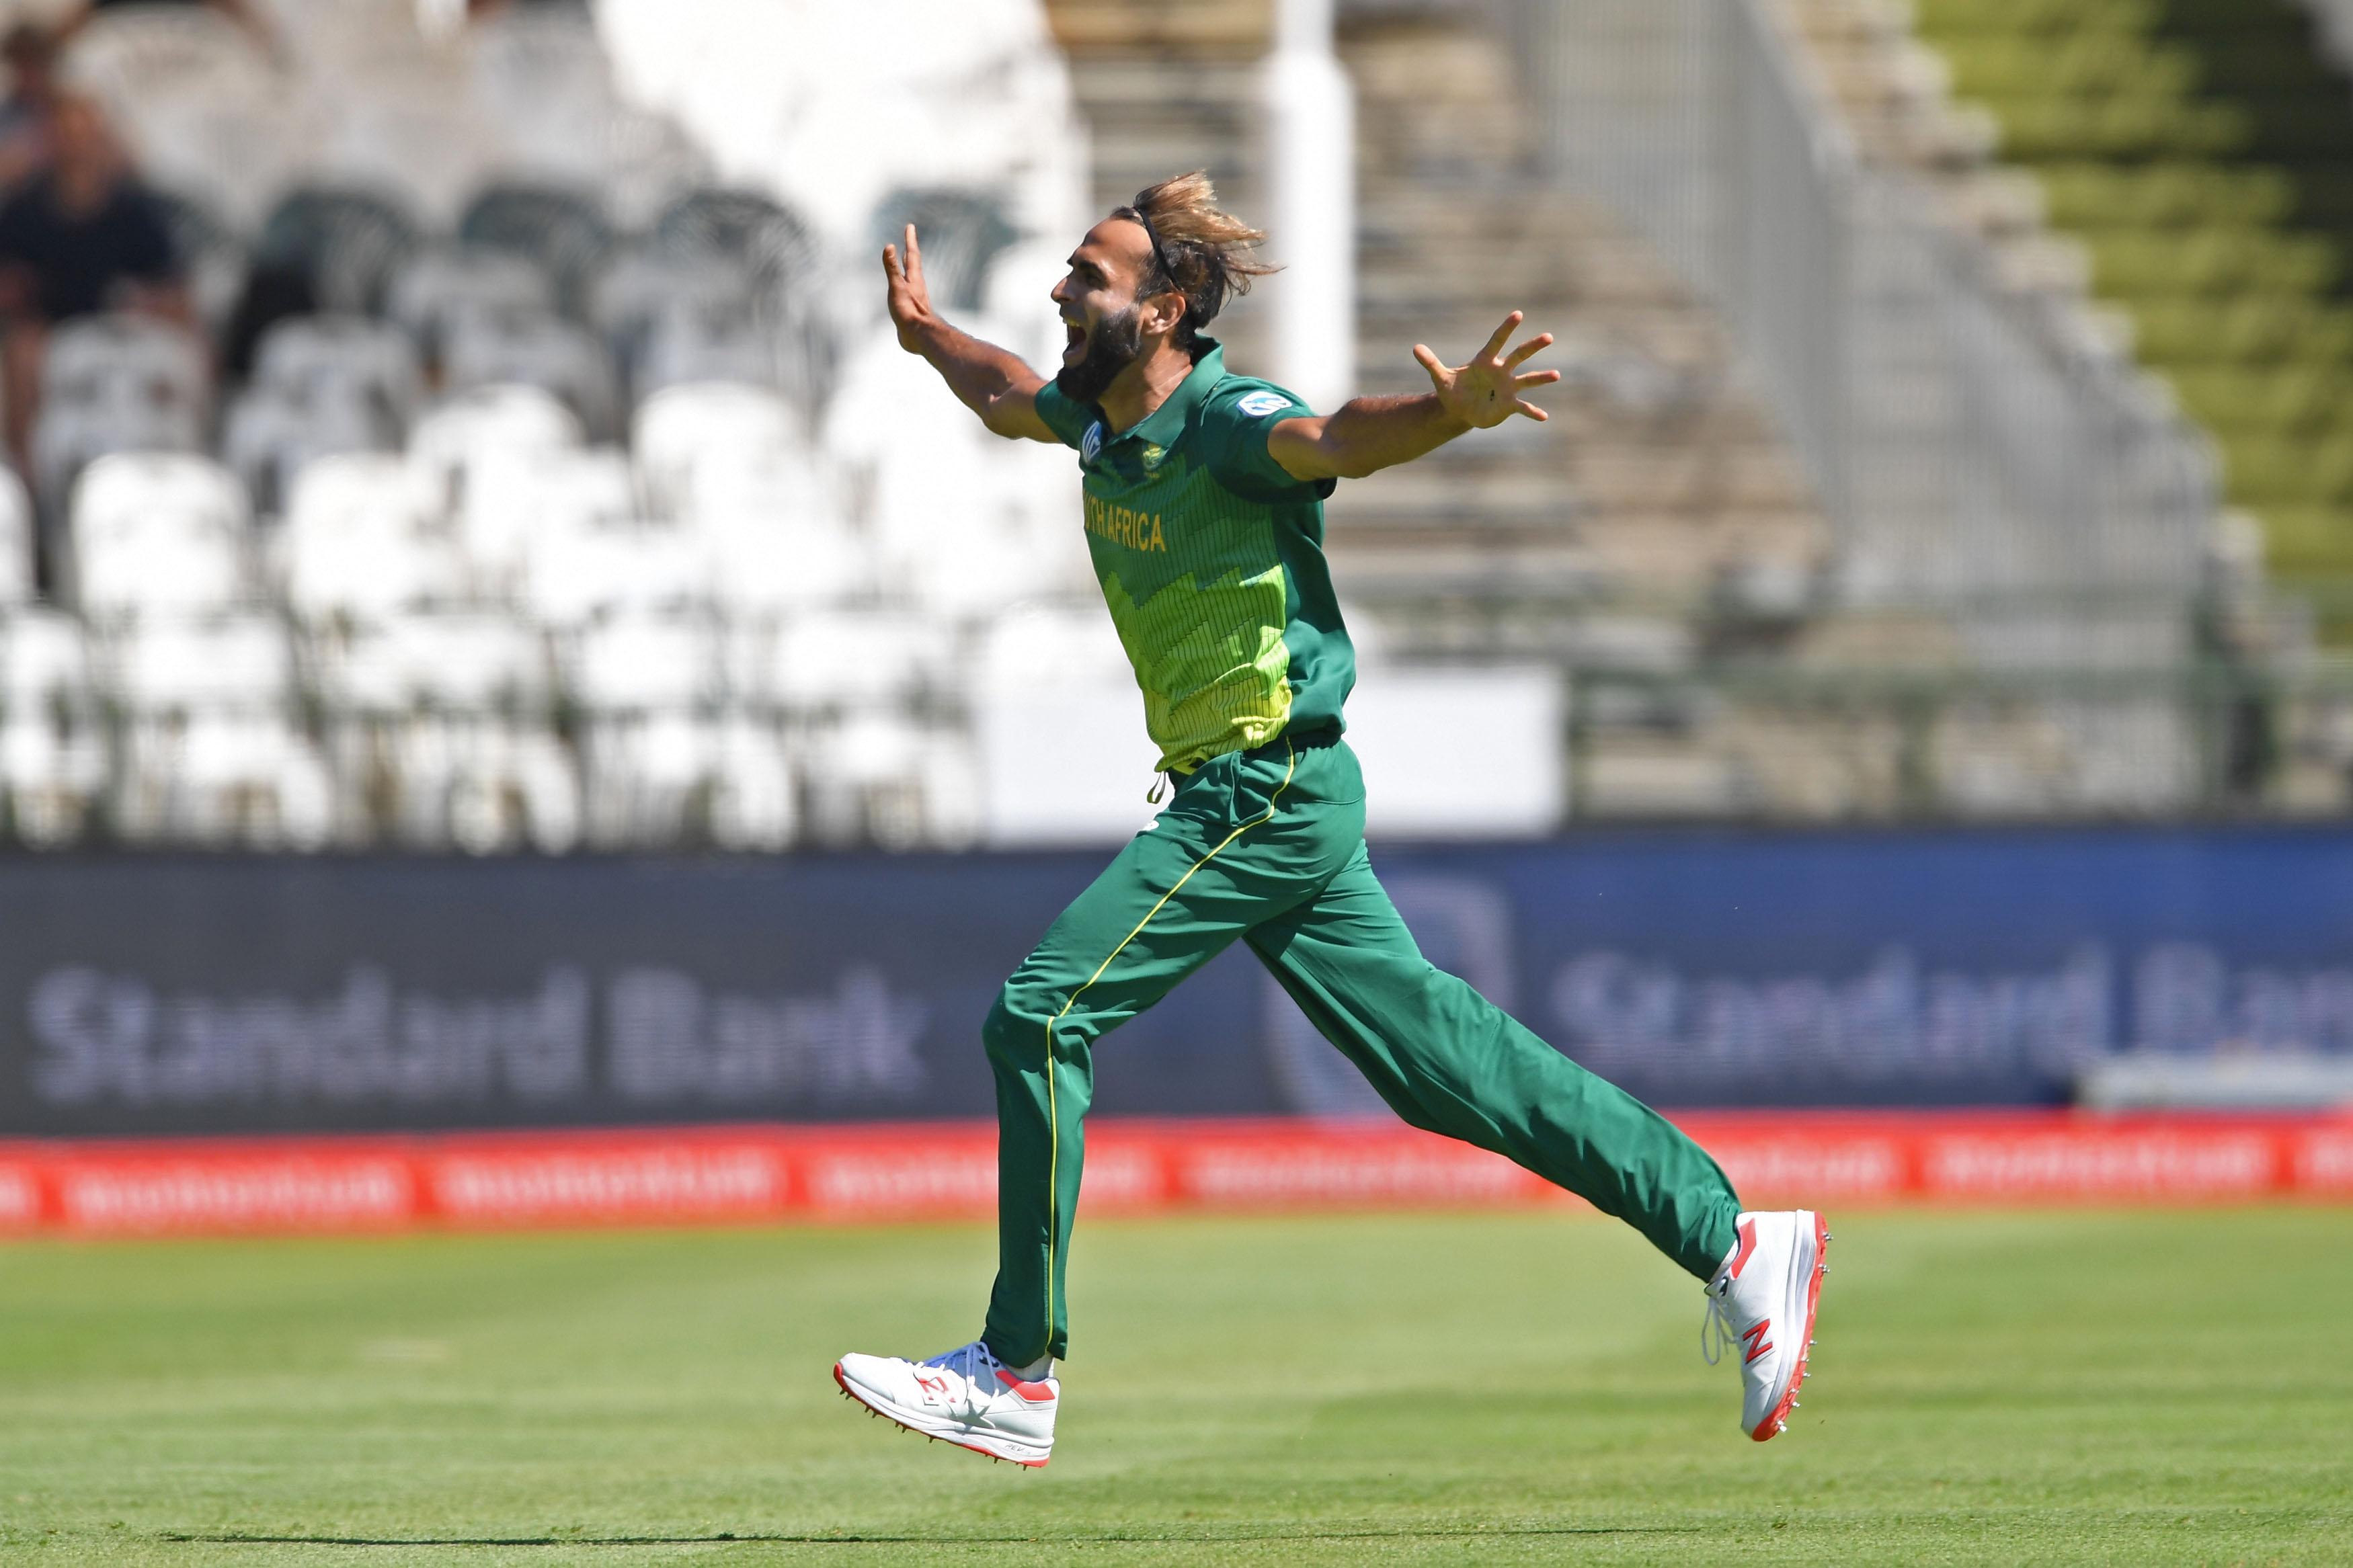 16 March 2019: South African spin bowler Imran Tahir celebrates taking the wicket of Sri Lanka's Oshada Fernando during the fifth and final one-day international of the series at Newlands in Cape Town. (Photograph by Ashley Vlotman/Gallo Images/Getty Images)